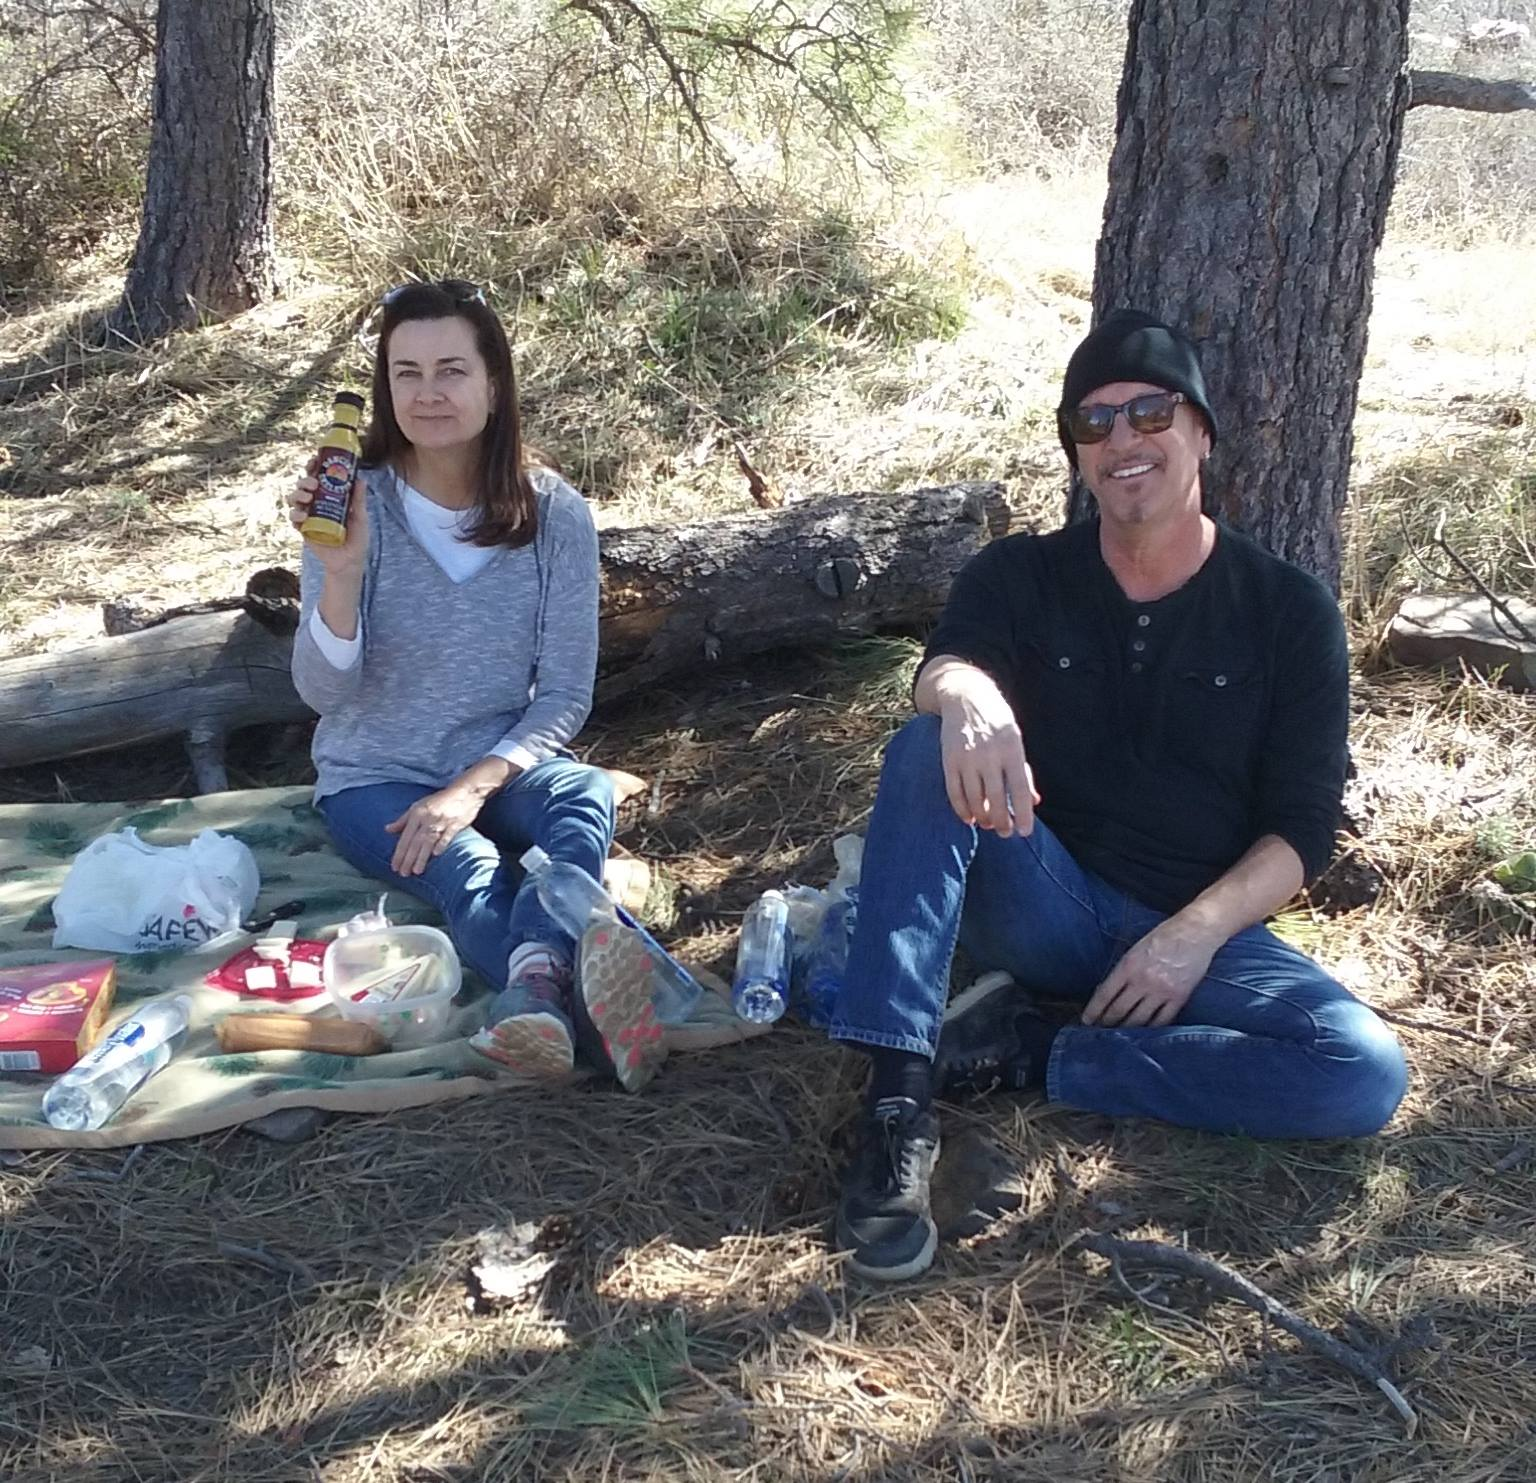 Having a picnic with @StevenThePirate on the summit of Mt. Tritle in Prescott, AZ